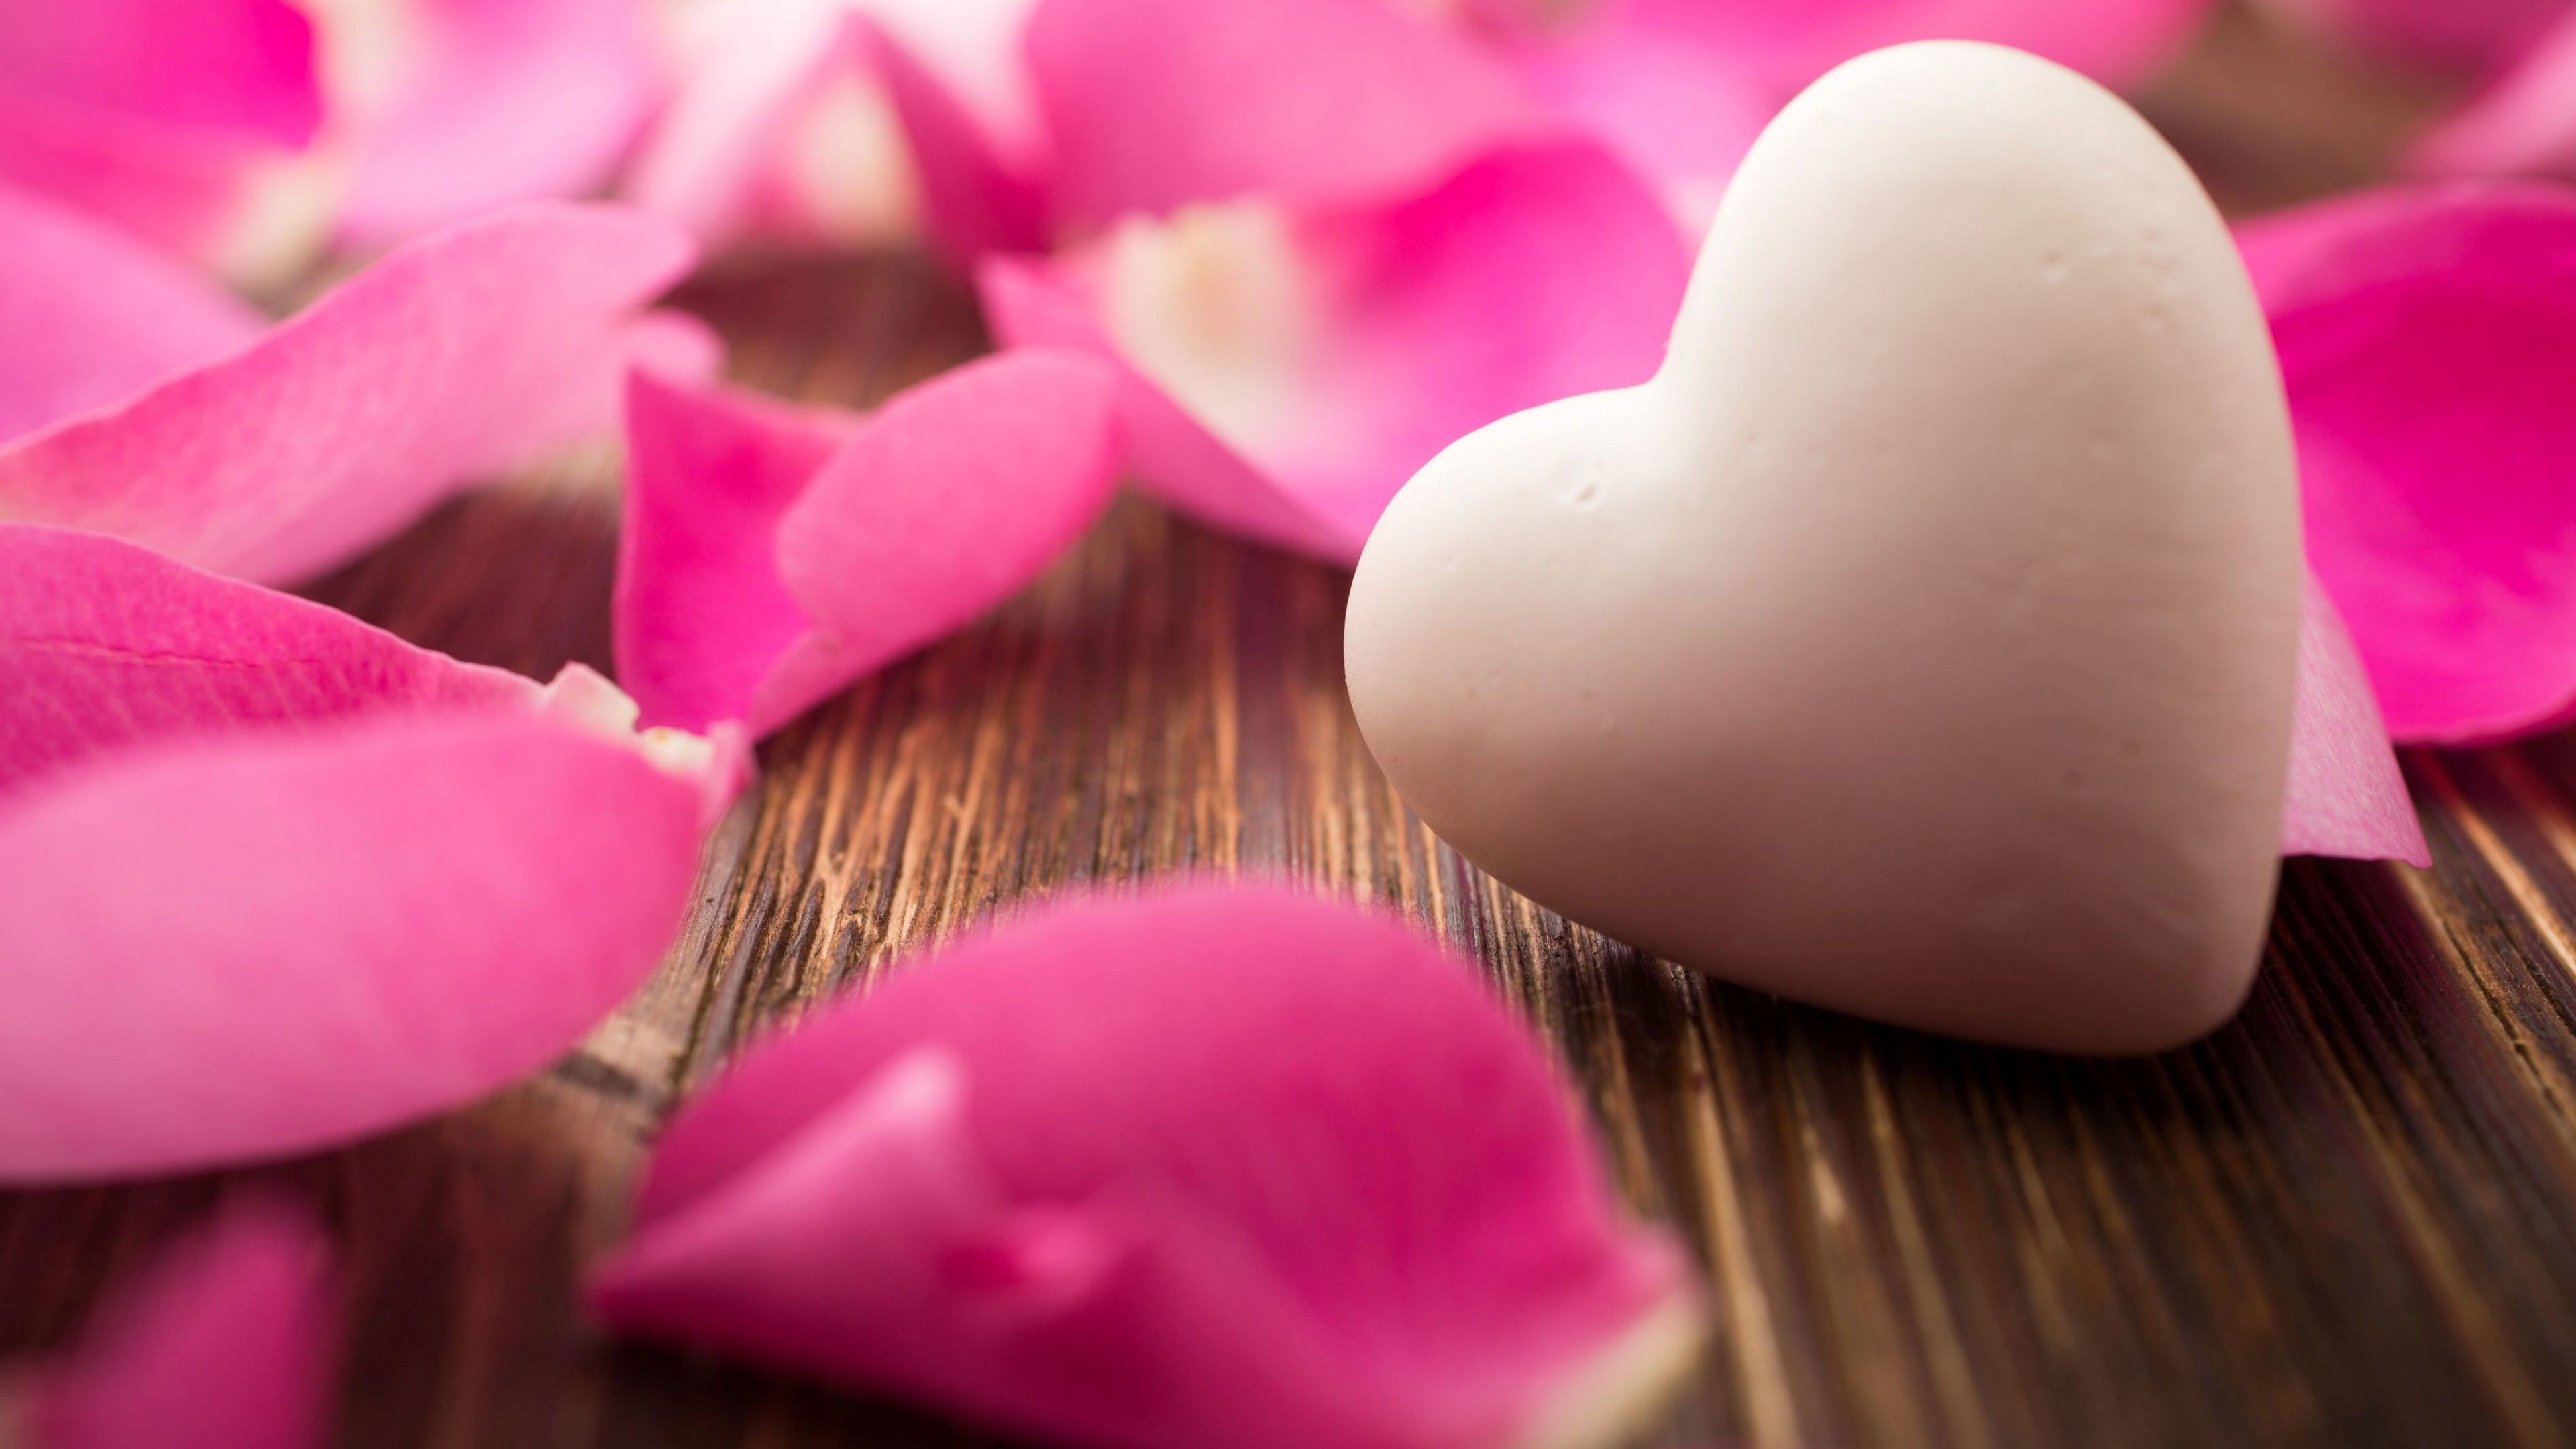 Cute Love Wallpapers For Mobile 70 Images